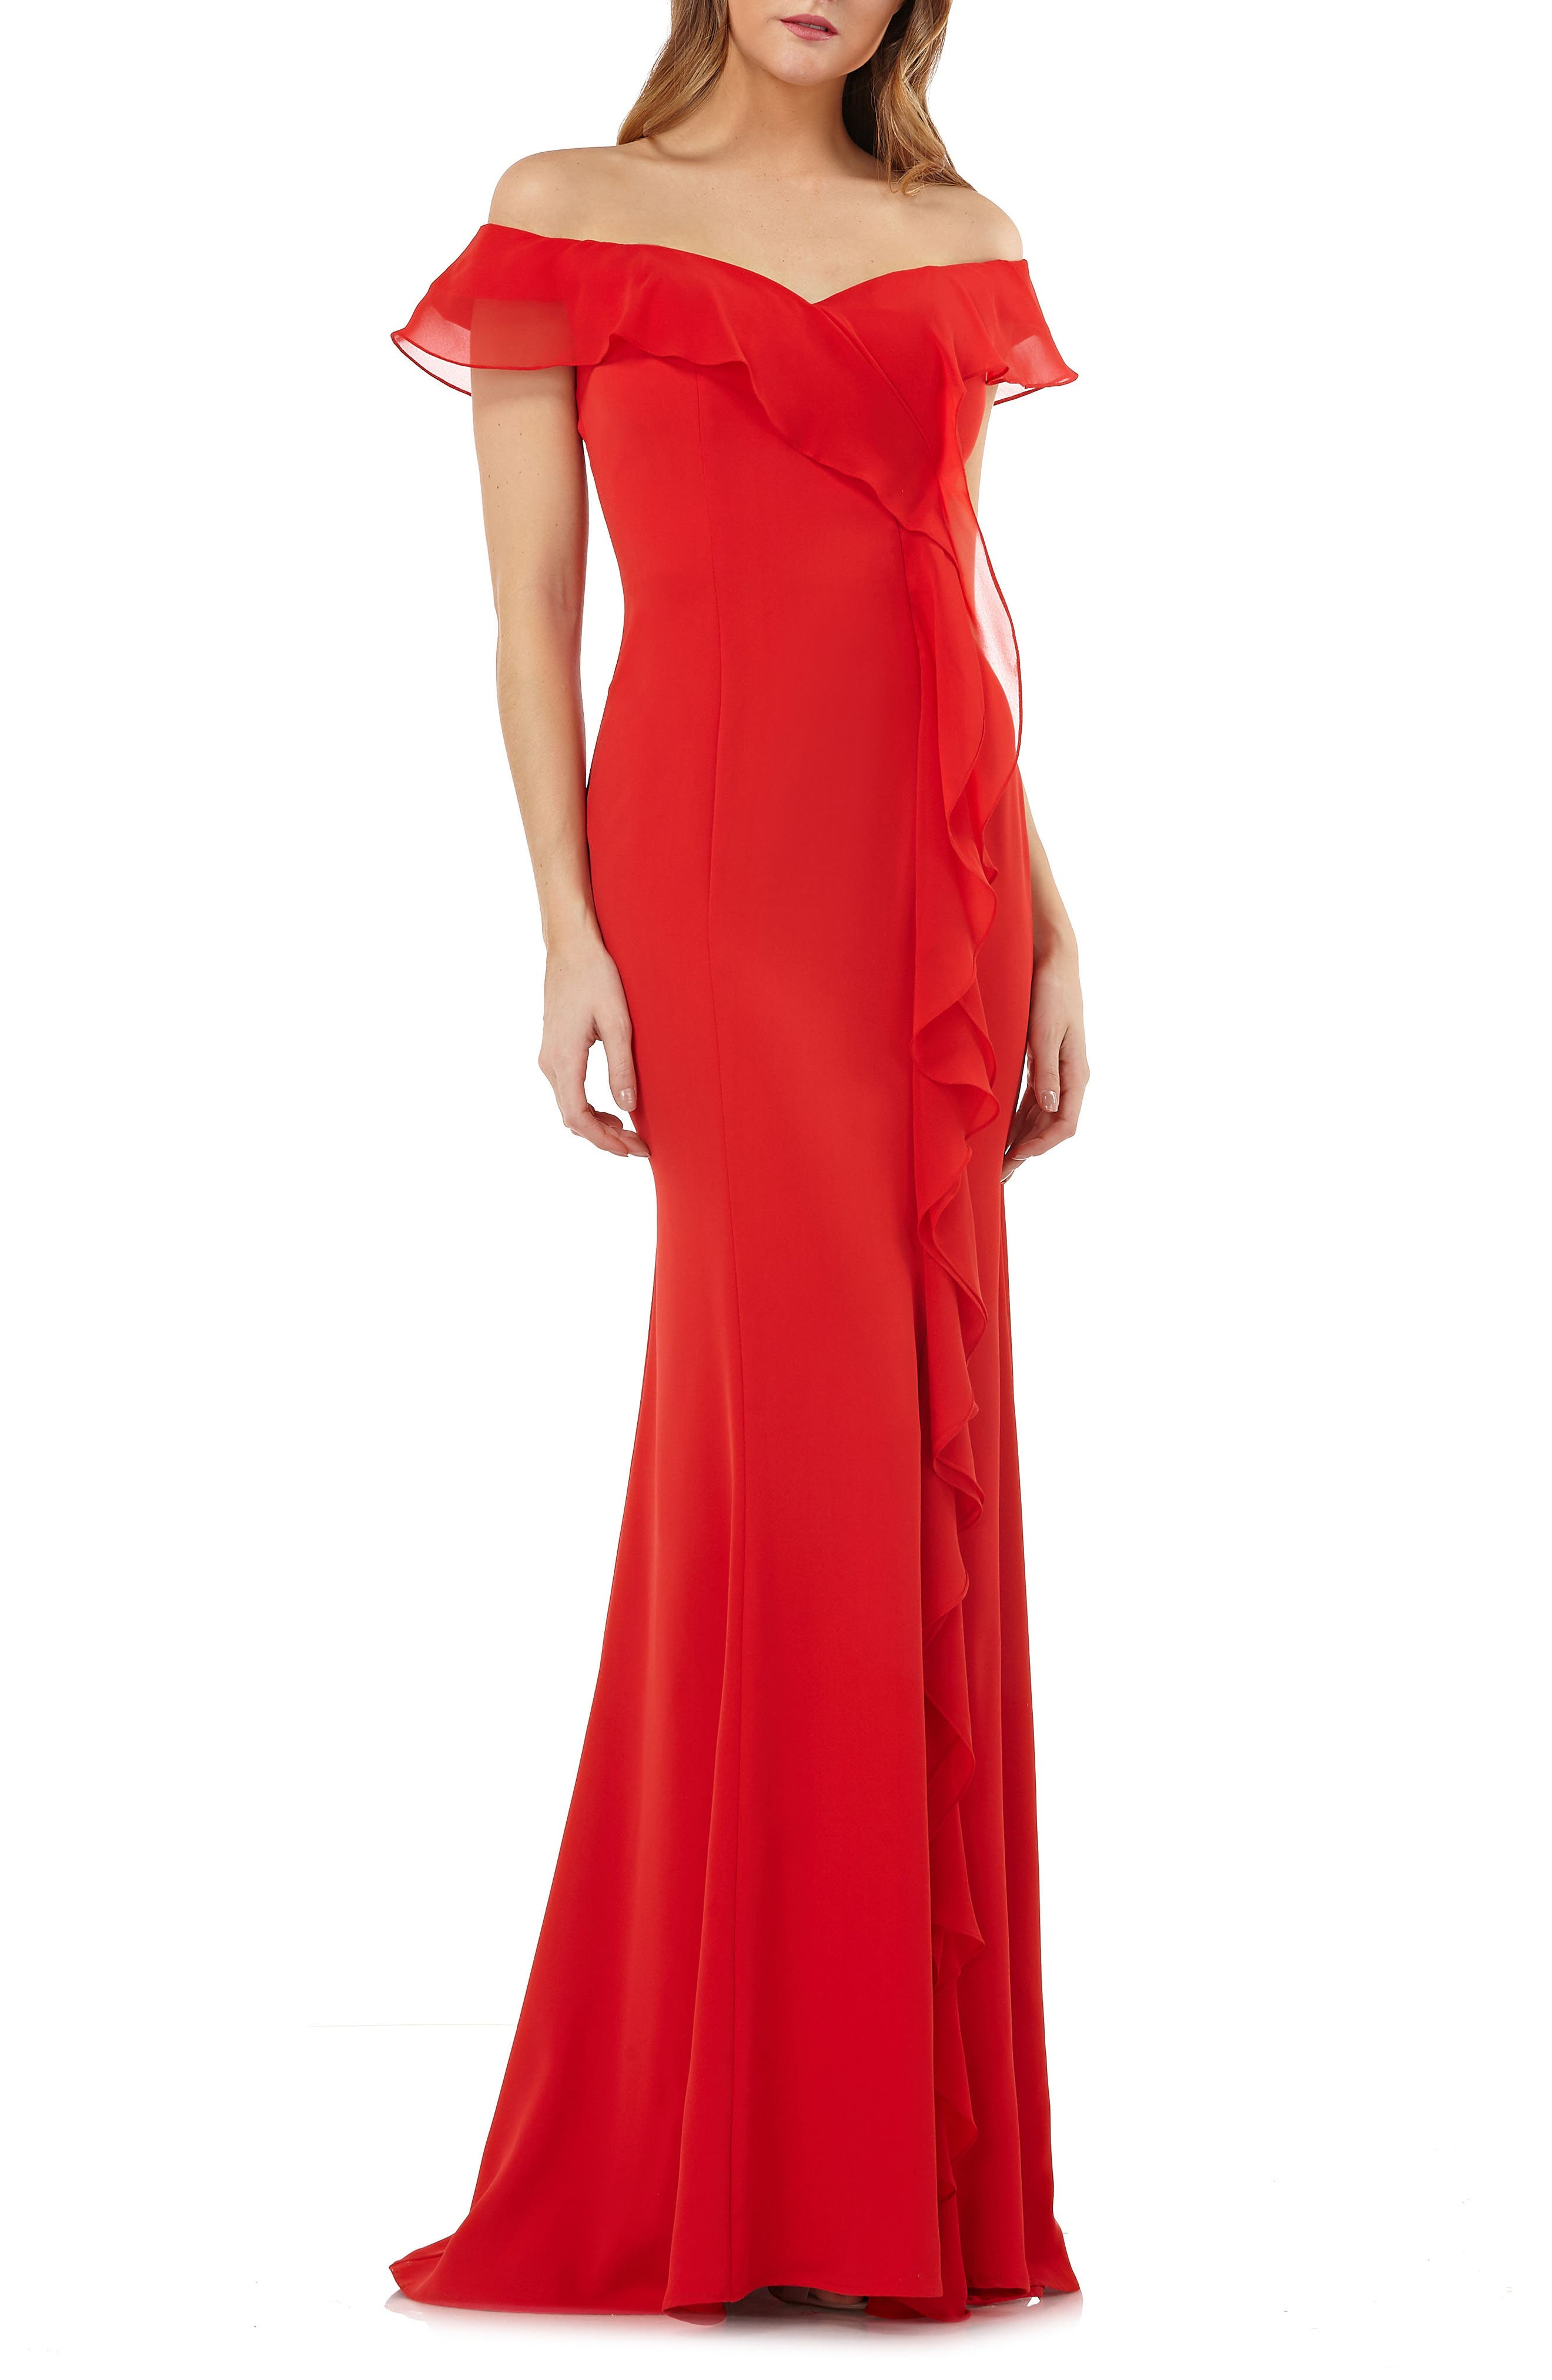 Off the Shoulder Cascading Ruffle Gown,                             Main thumbnail 1, color,                             Flame Red